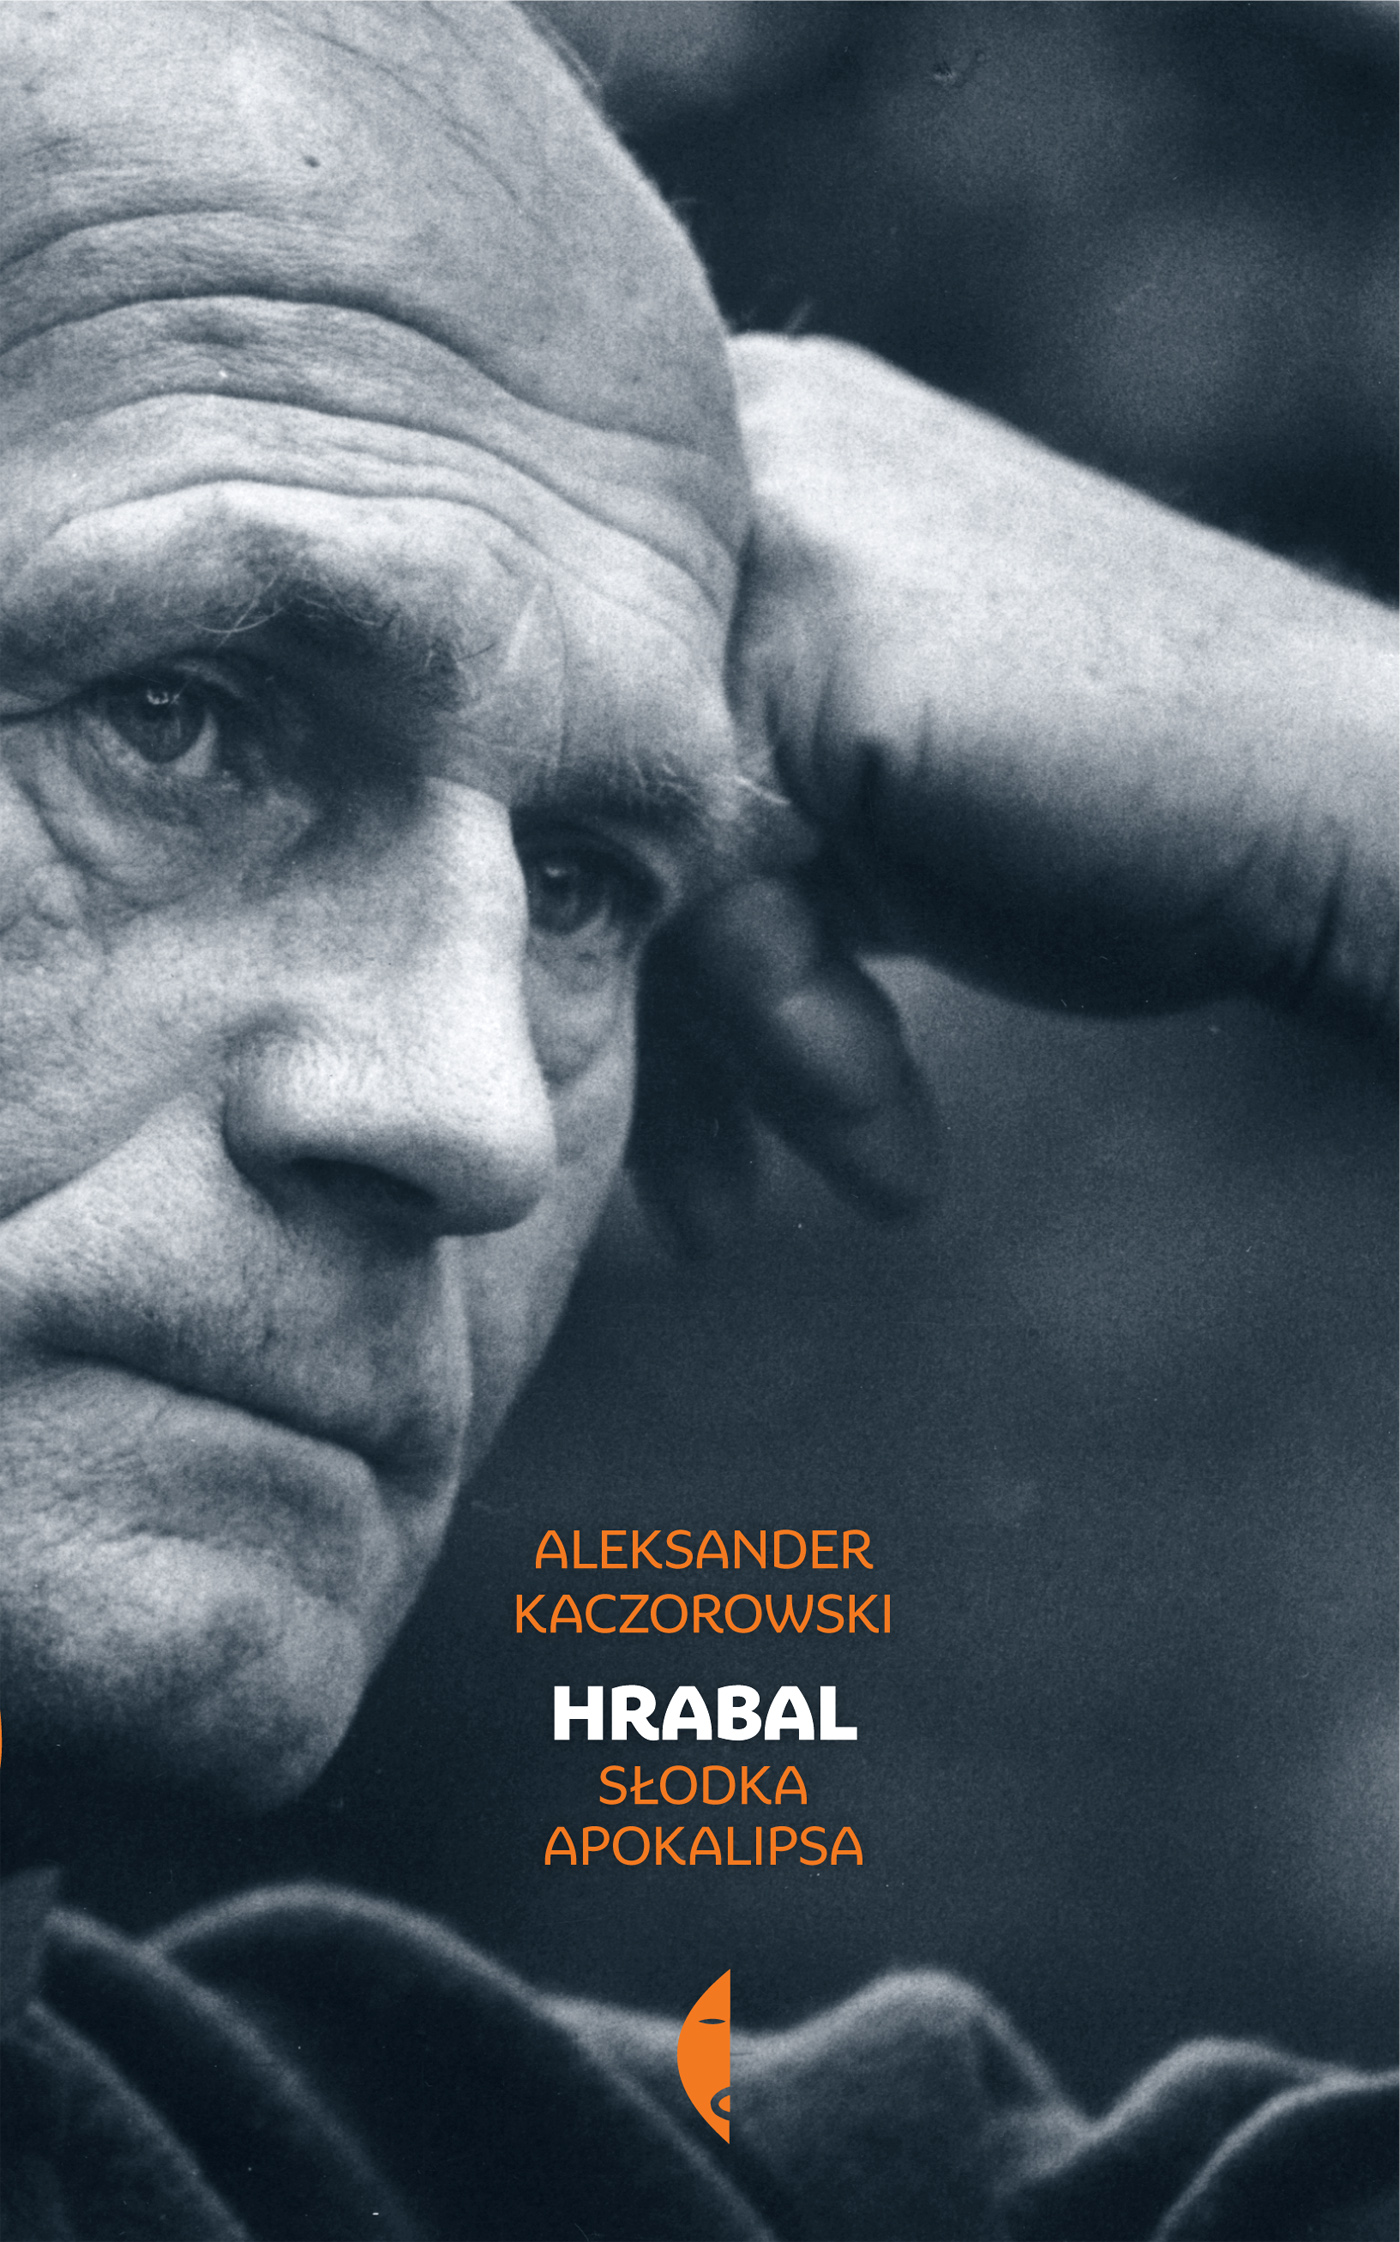 http://czarne.com.pl/uploads/catalog/product/cover/985/hrabal.jpg